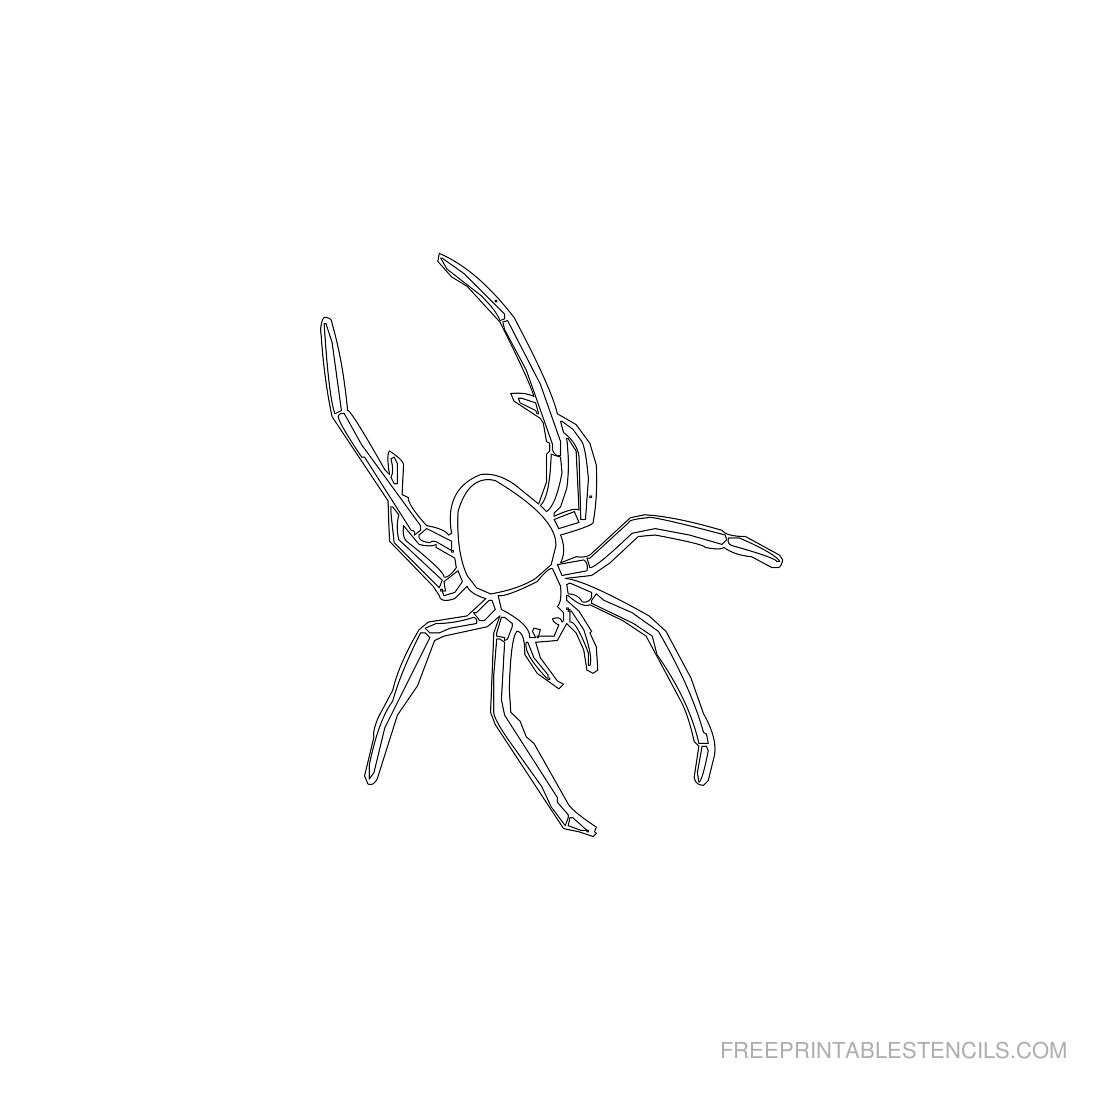 Free Printable Animal Stencil Spider